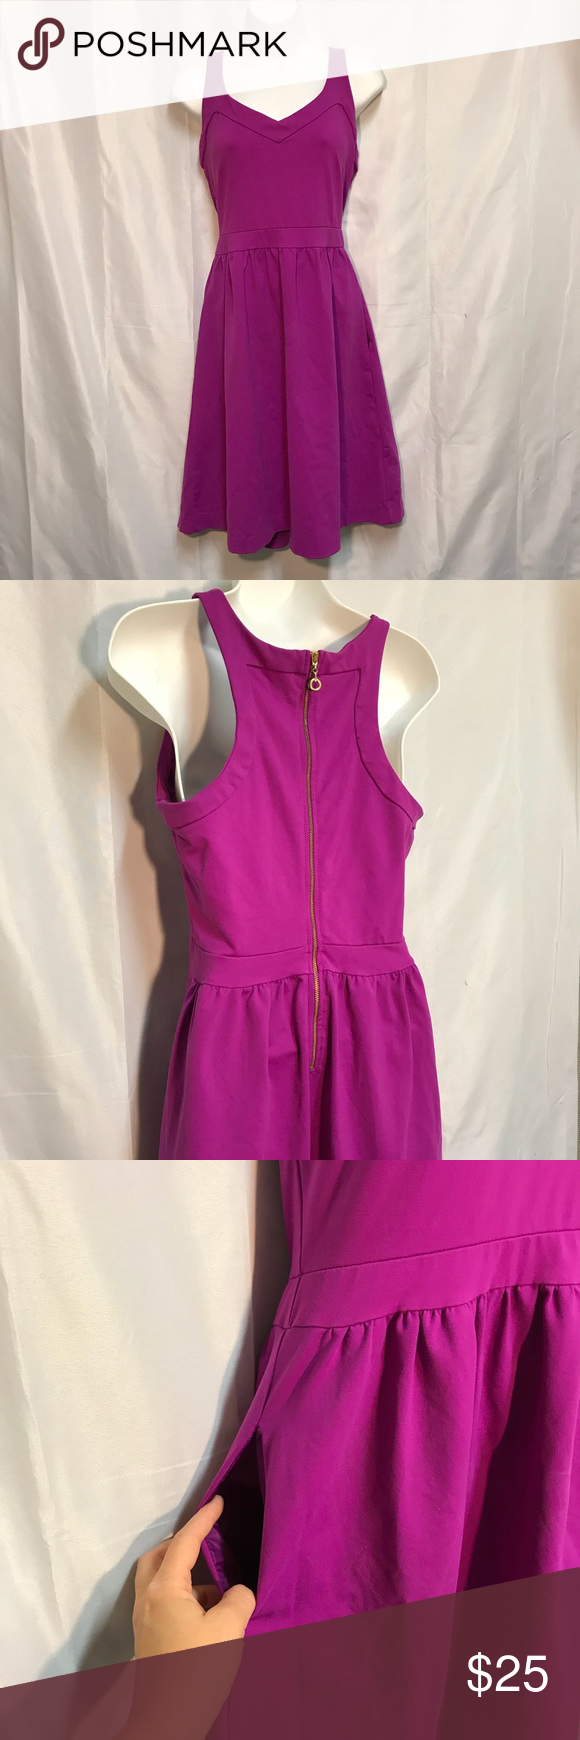 Cynthia Rowley Purple Dress Has Pockets On Each Side Of Zips In The Back Good Condition Size Medium Dresses